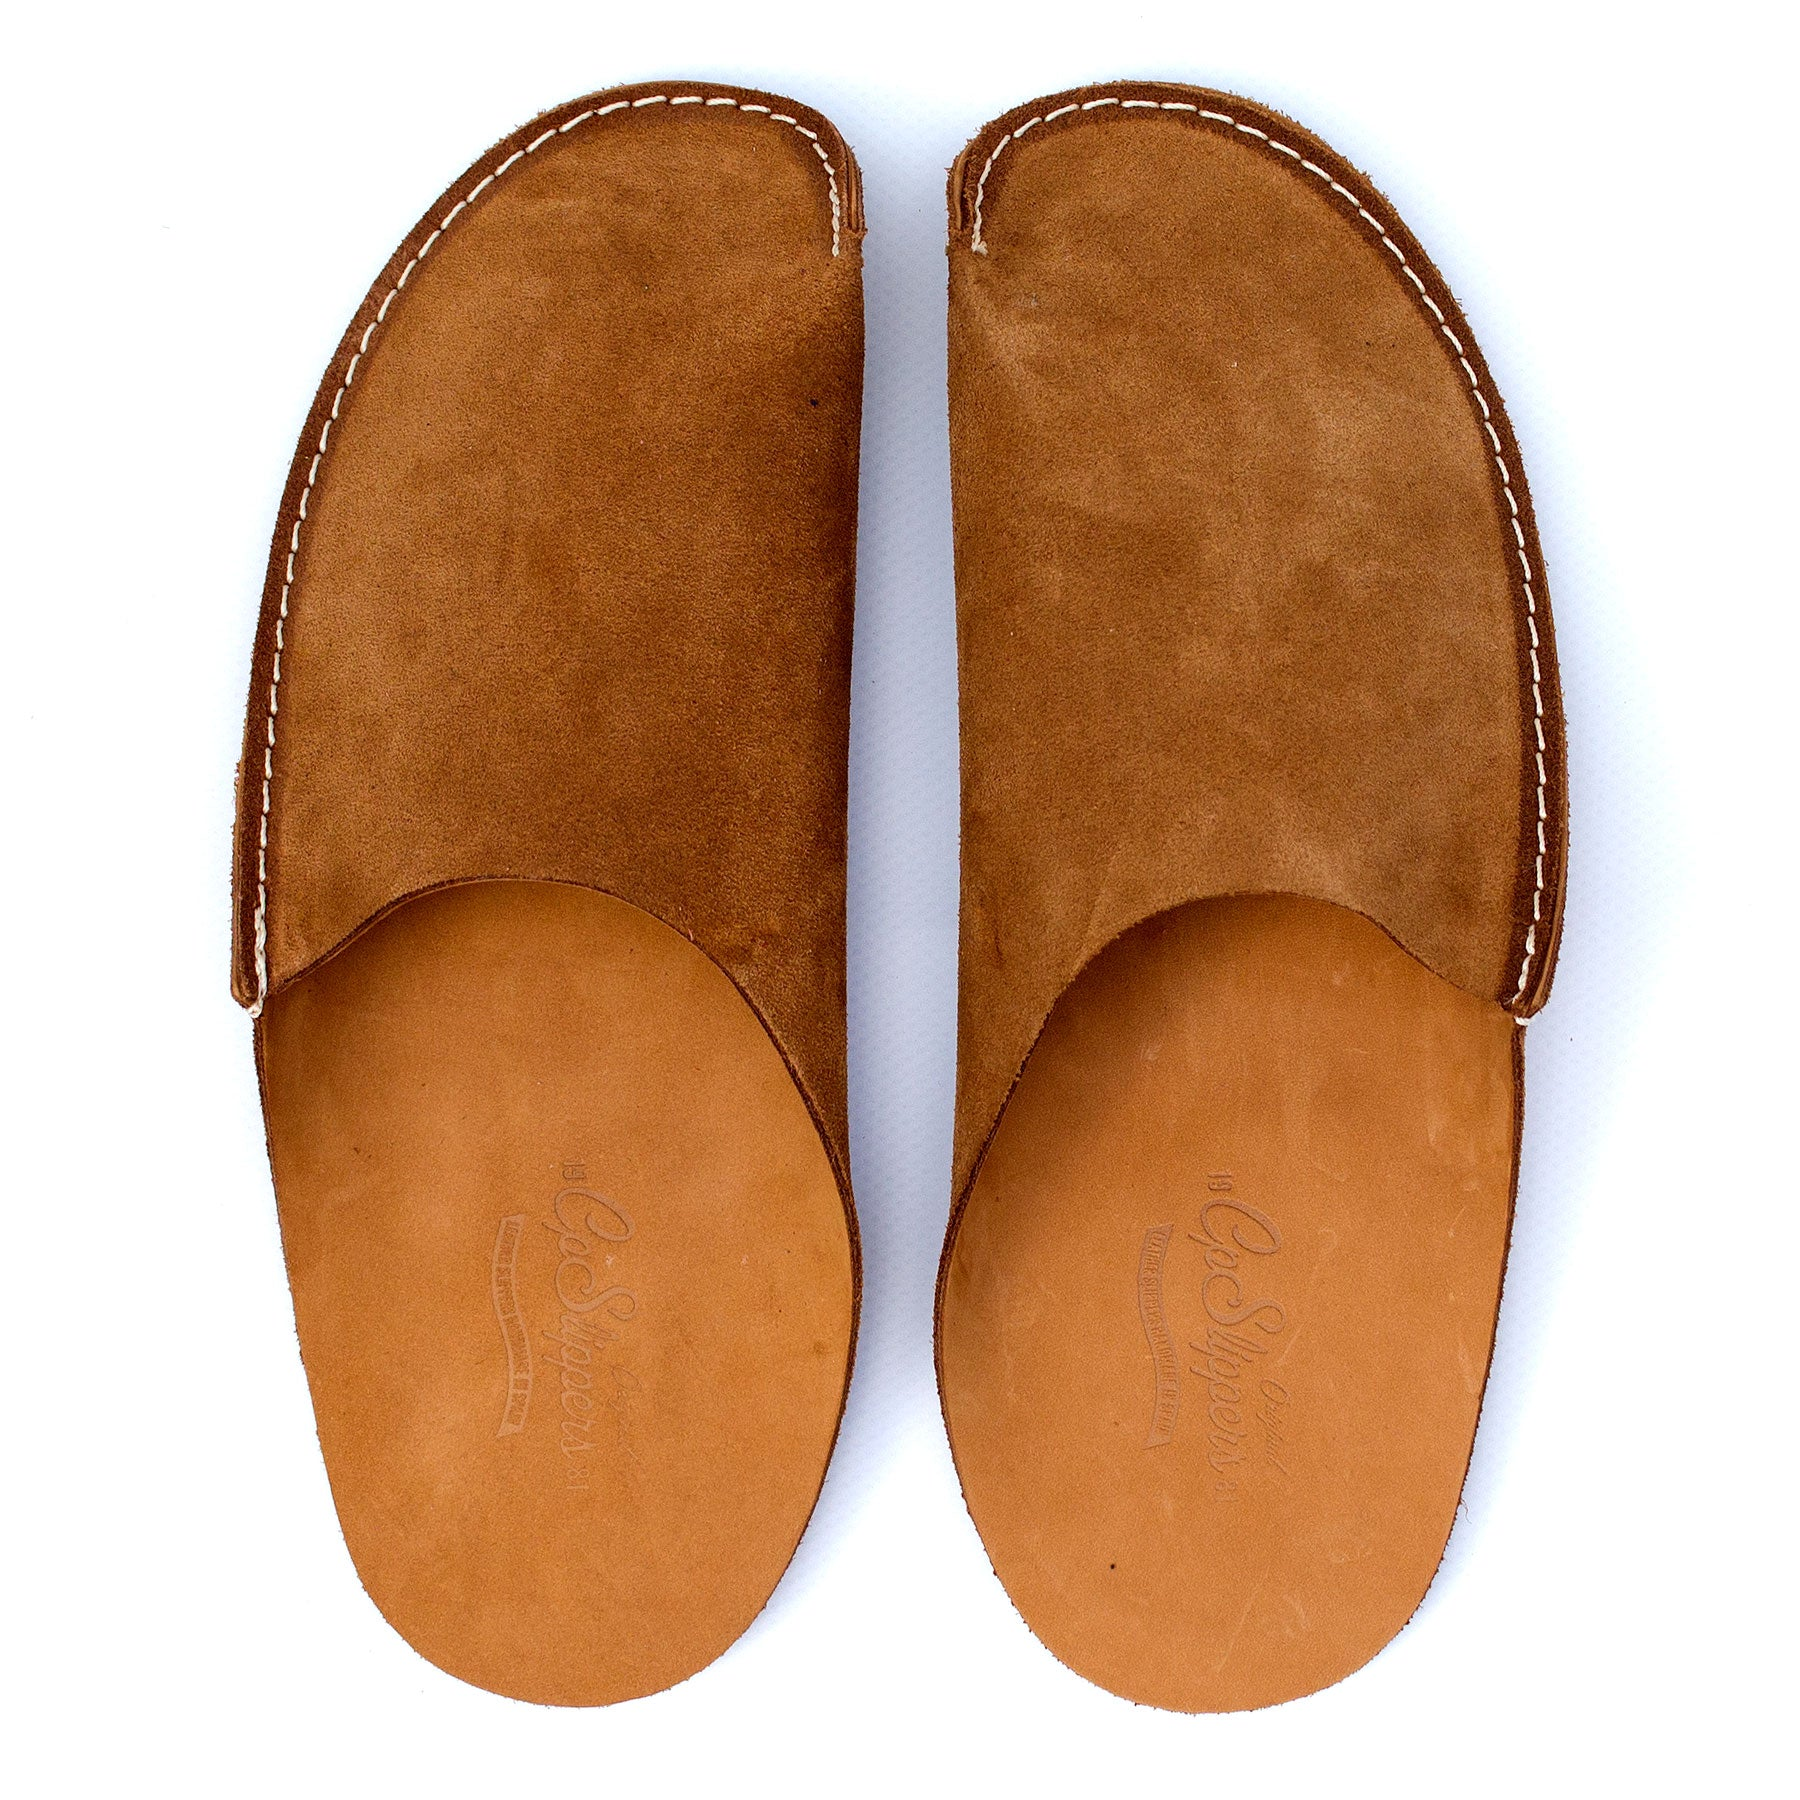 Tan CP Slippers minimalist home shoes for man and woman